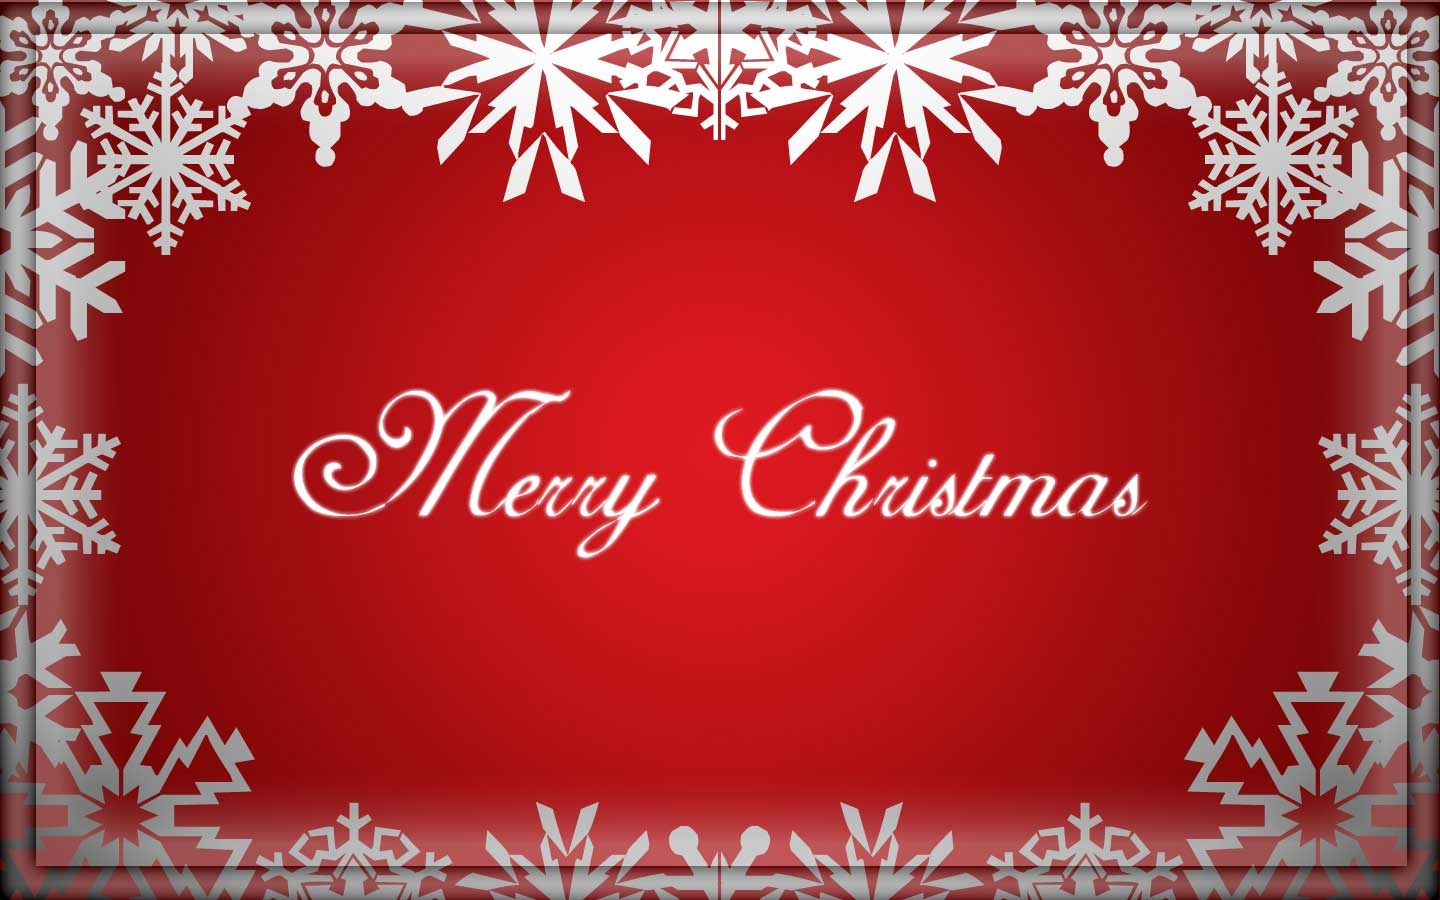 Christian Christmas Photo Greetings Cards Free Christmas Greeting 002